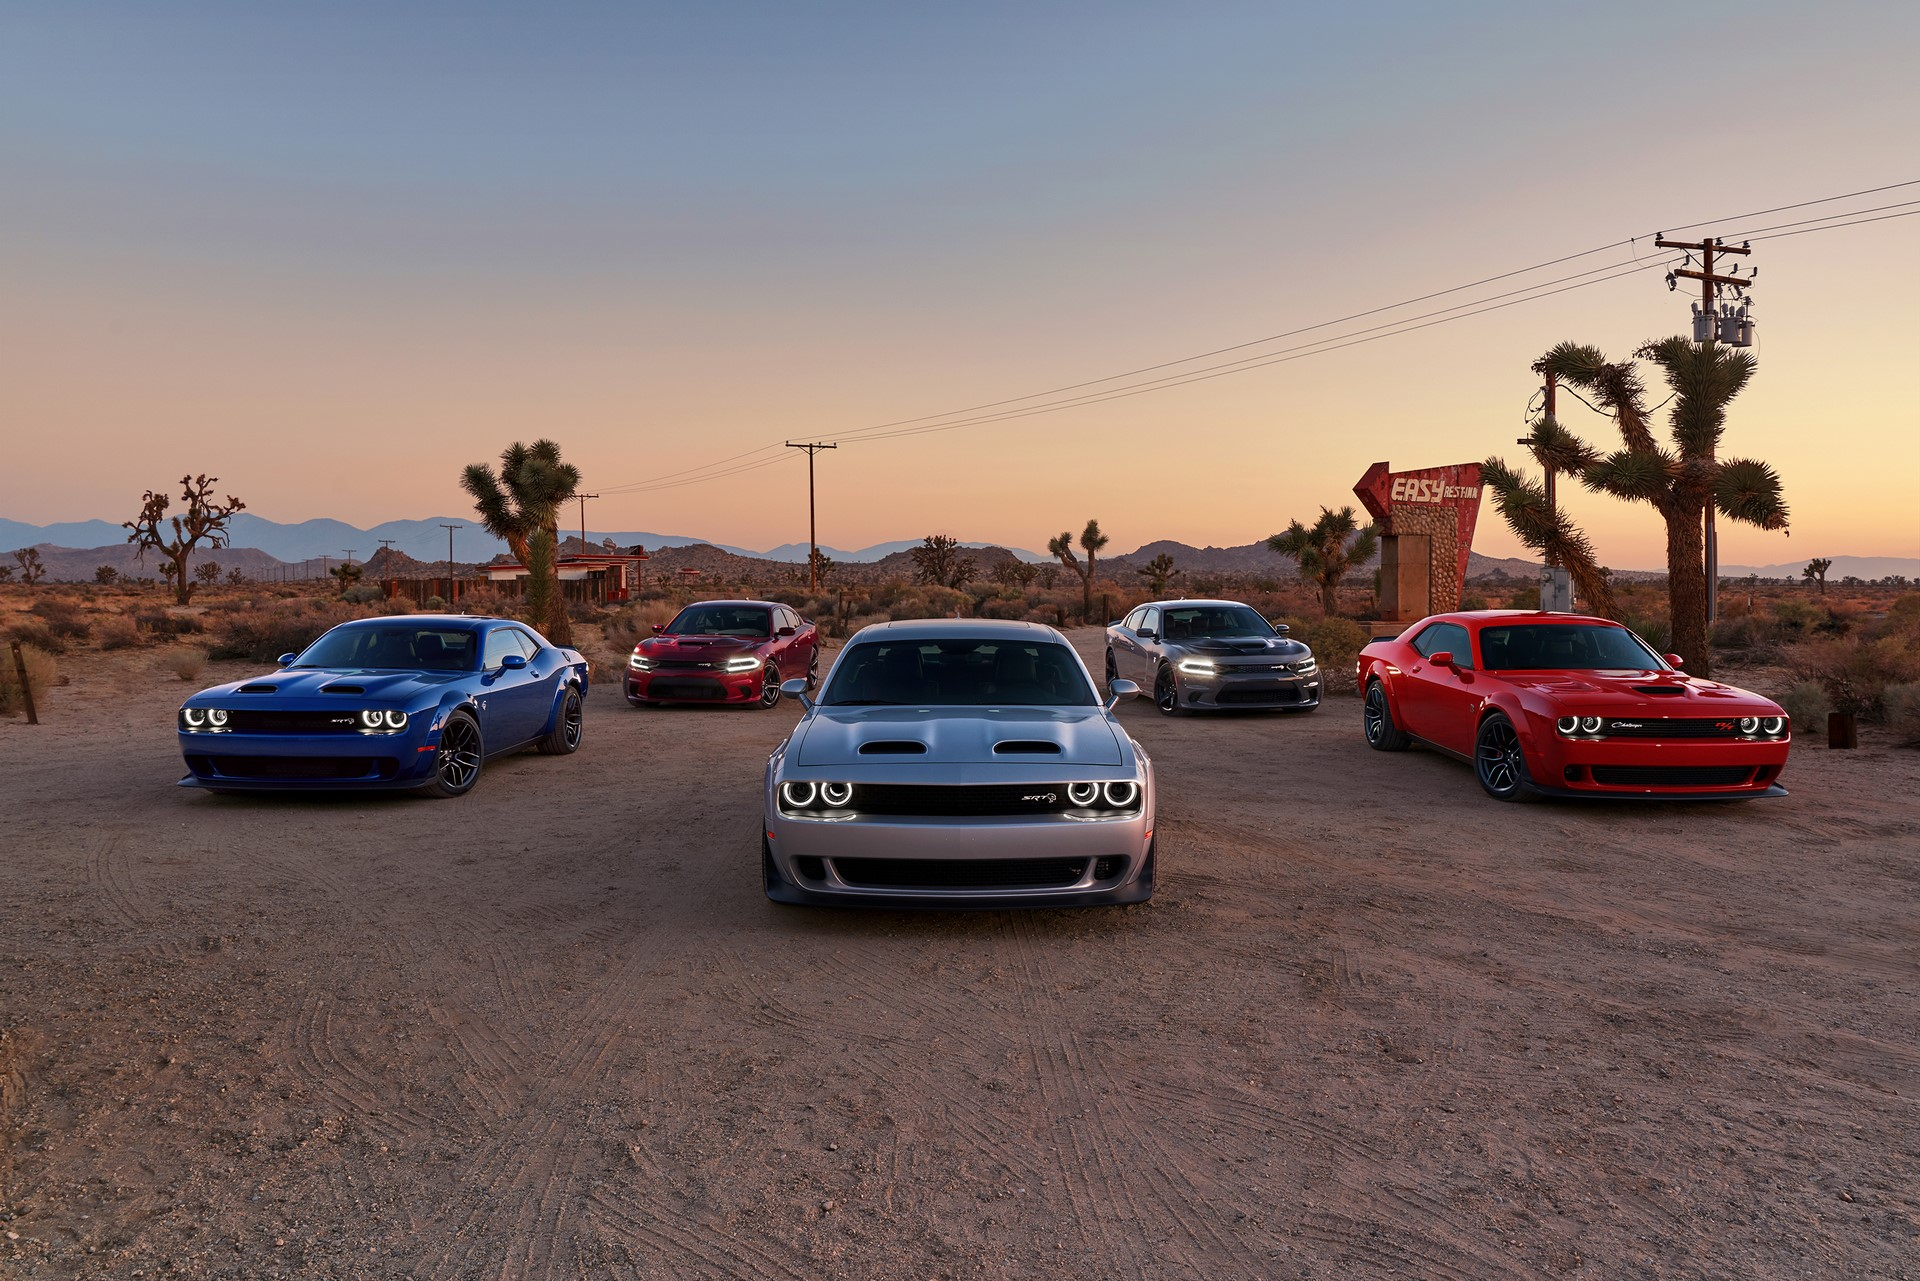 2019 Dodge Challenger SRT Hellcat Widebody, Charger SRT Hellcat, Challenger SRT Hellcat Redeye Widebody, Charger SRT Hellcat, Challenger R/T Scat Pack Widebody (From left to right)